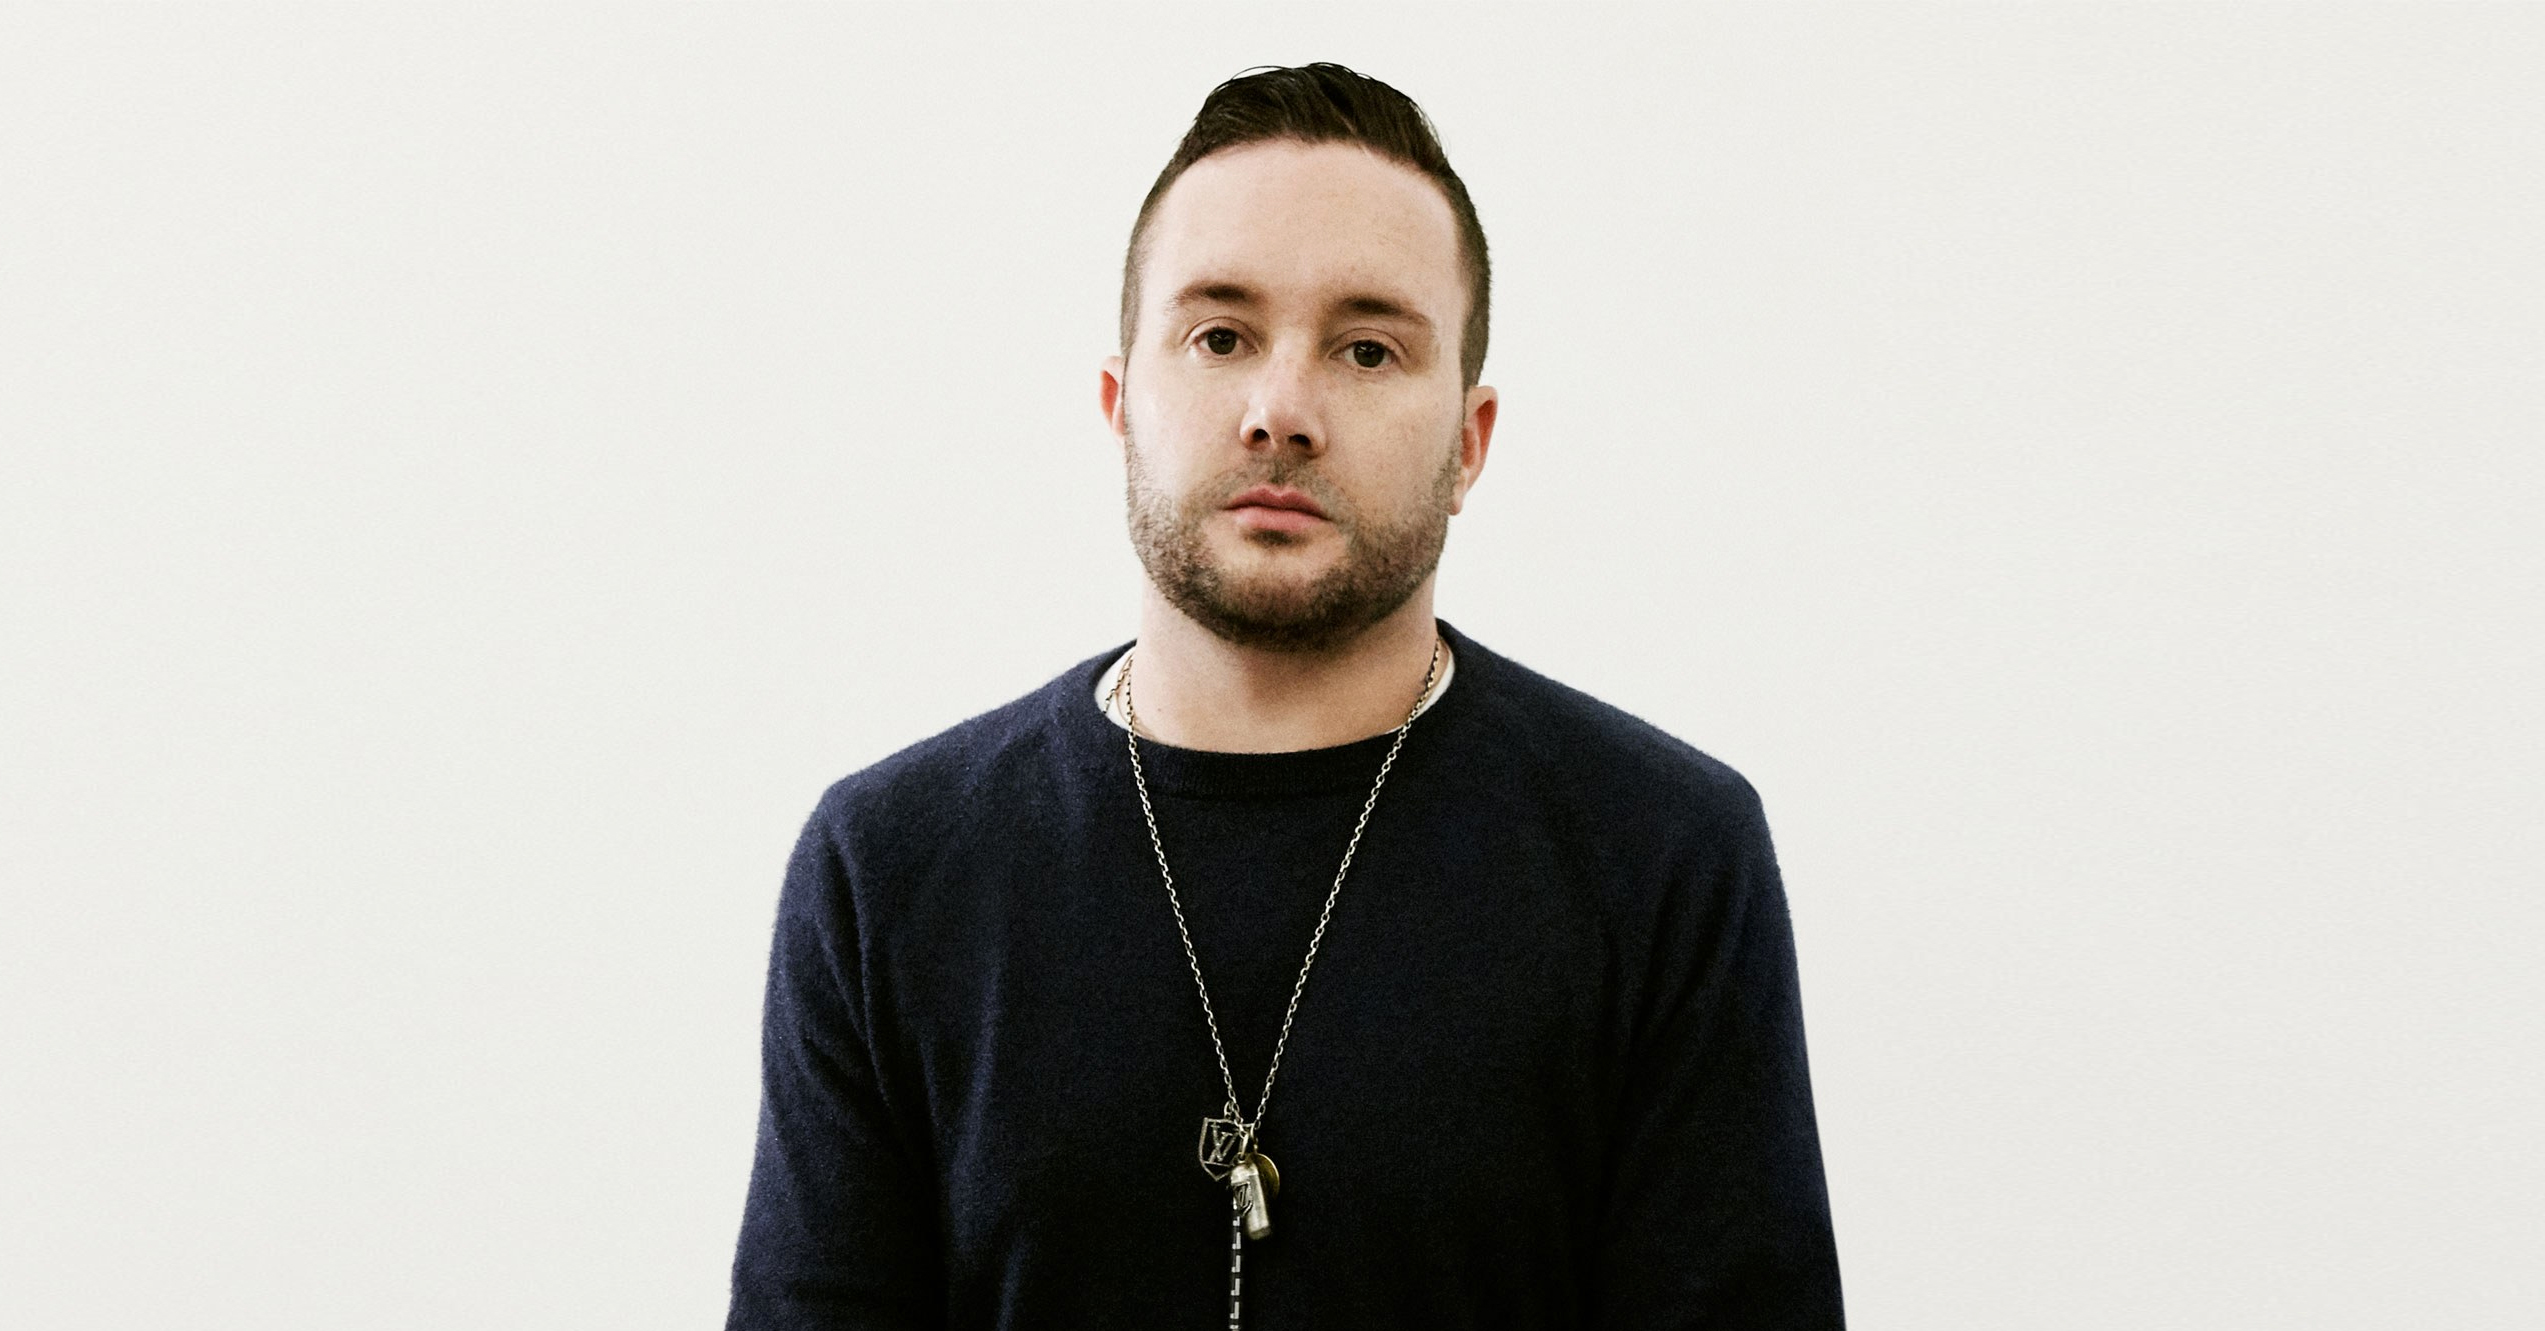 Kim Jones is curating Sotheby's Contemporary sale in New York